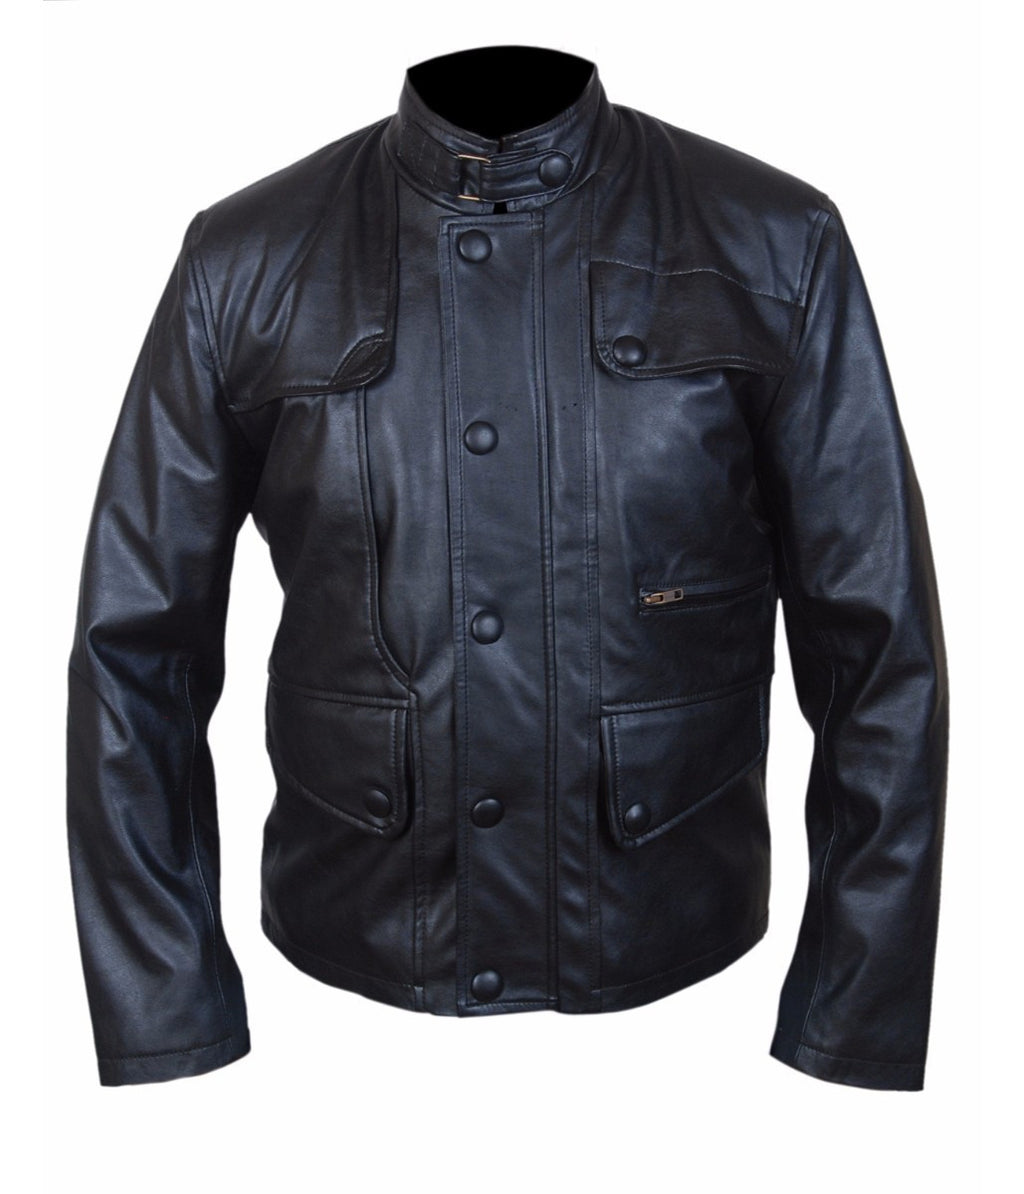 Diapo Leather Men's Black Rivet Center Zip with Tab Collar Cowhide Vegetable Tanned Leather Jacket      40% OFF